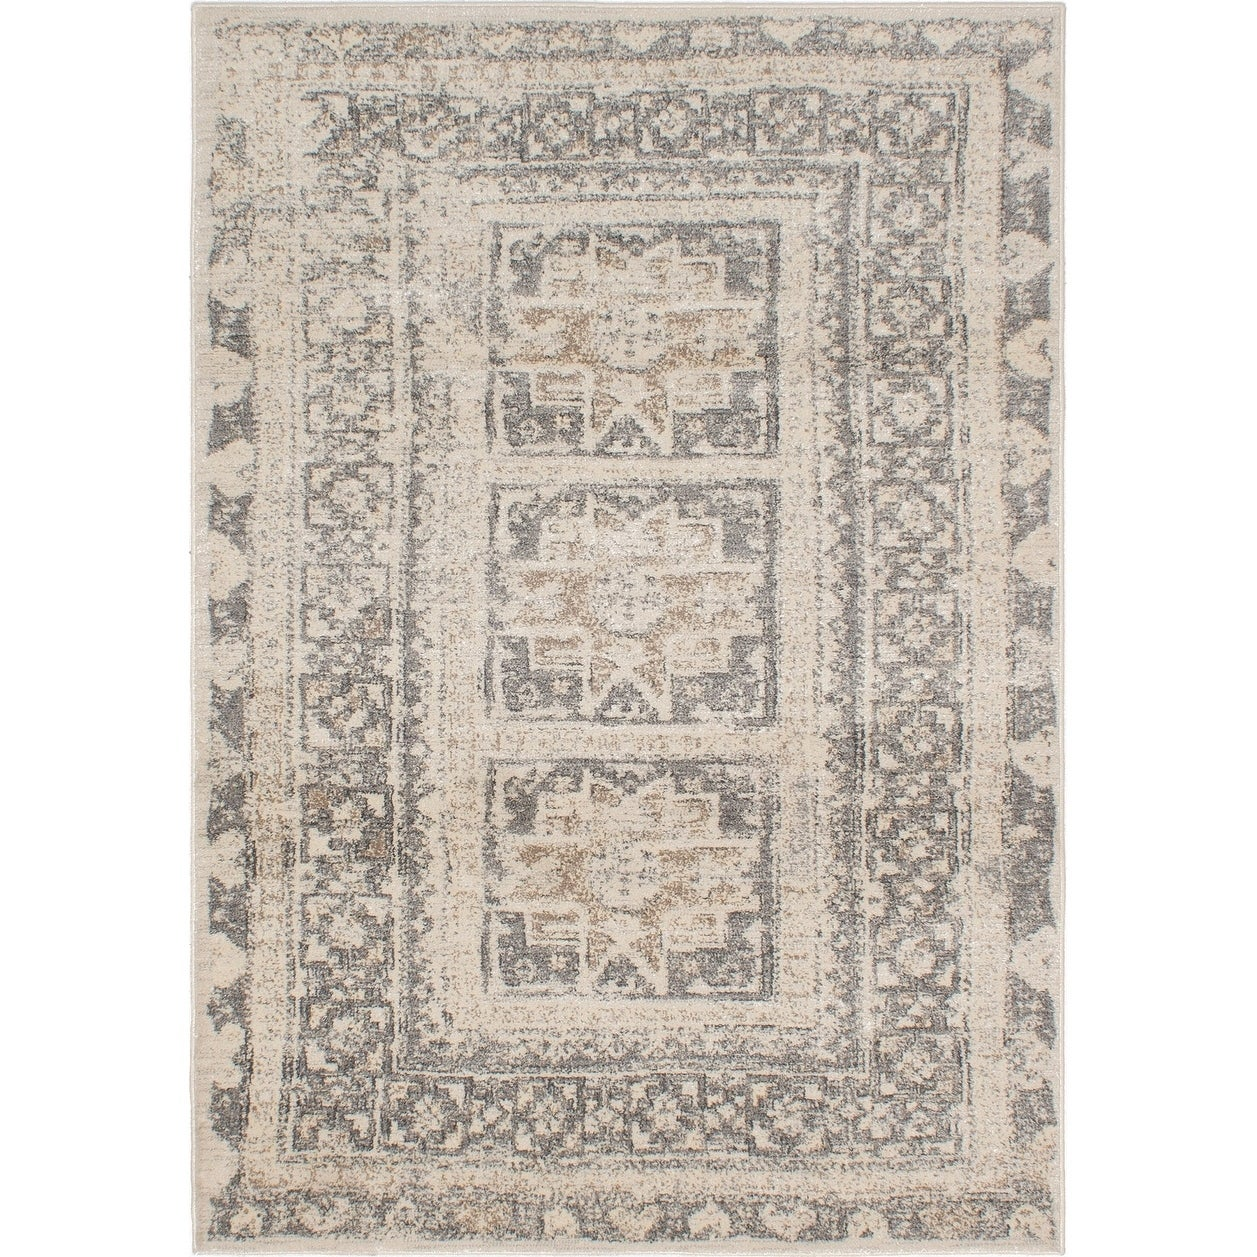 ECARPETGALLERY Machine Woven Tribal Cream, Dark Grey Polypropylene Rug - 710 X 102